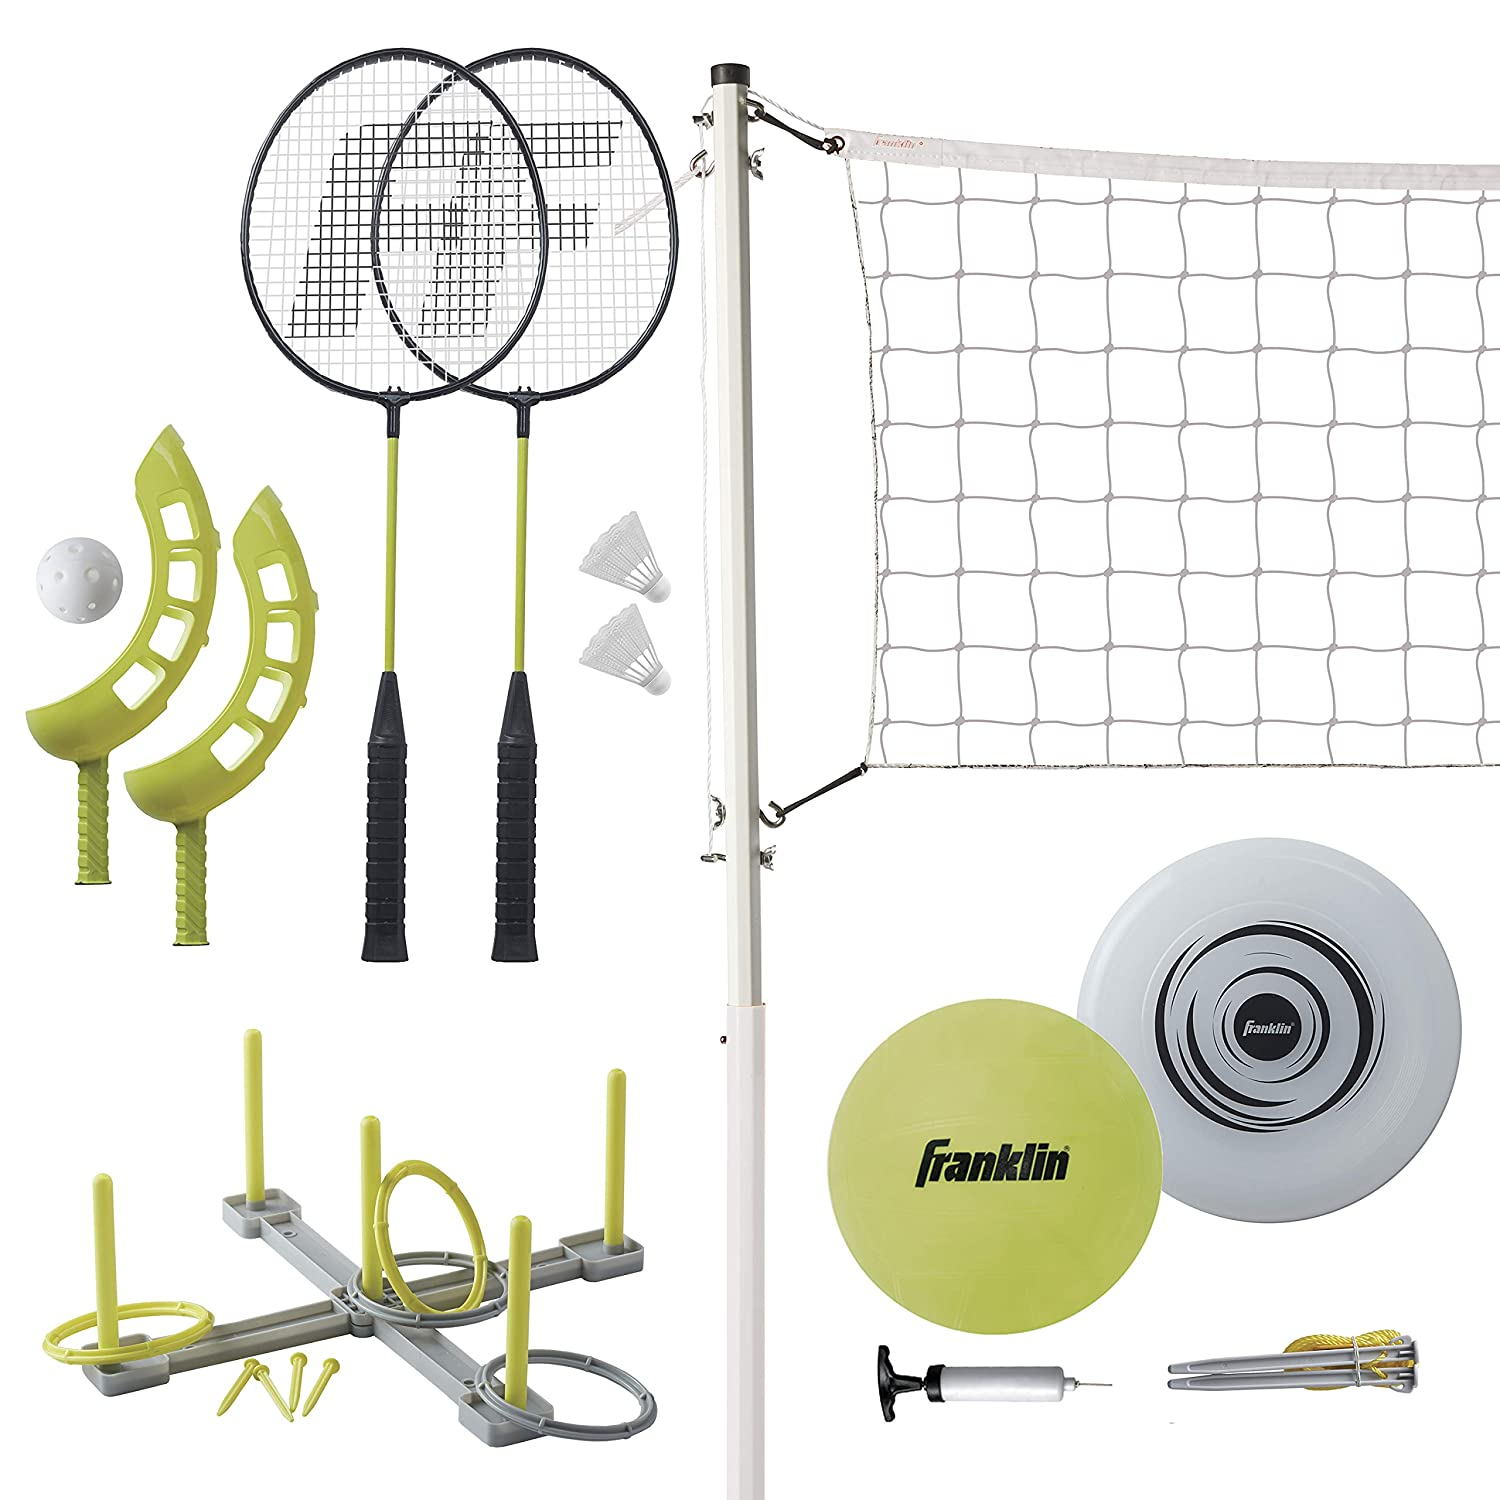 Amazon.com : Franklin Sports Fun 5 Combo Set - Badminton - Volleyball - Ring Toss - Flip Toss - Flying Disc : Sports & Outdoors